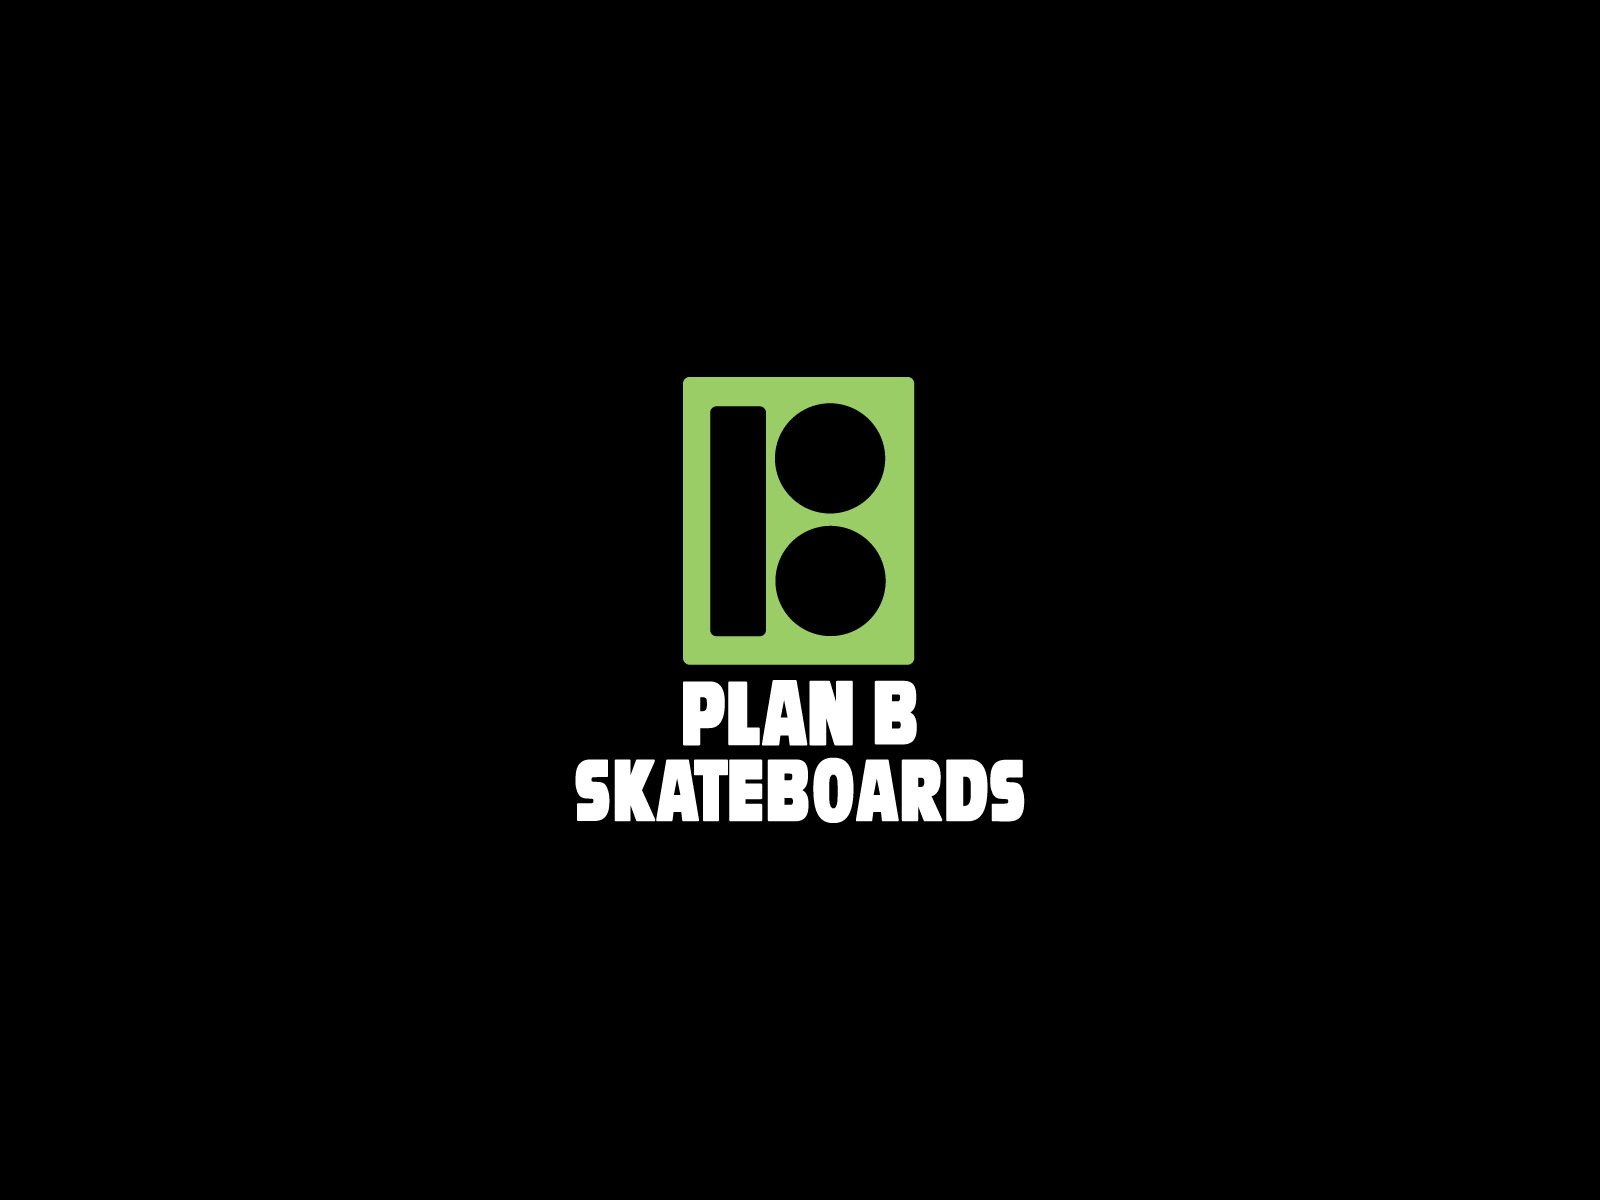 Plan B skateboards logo